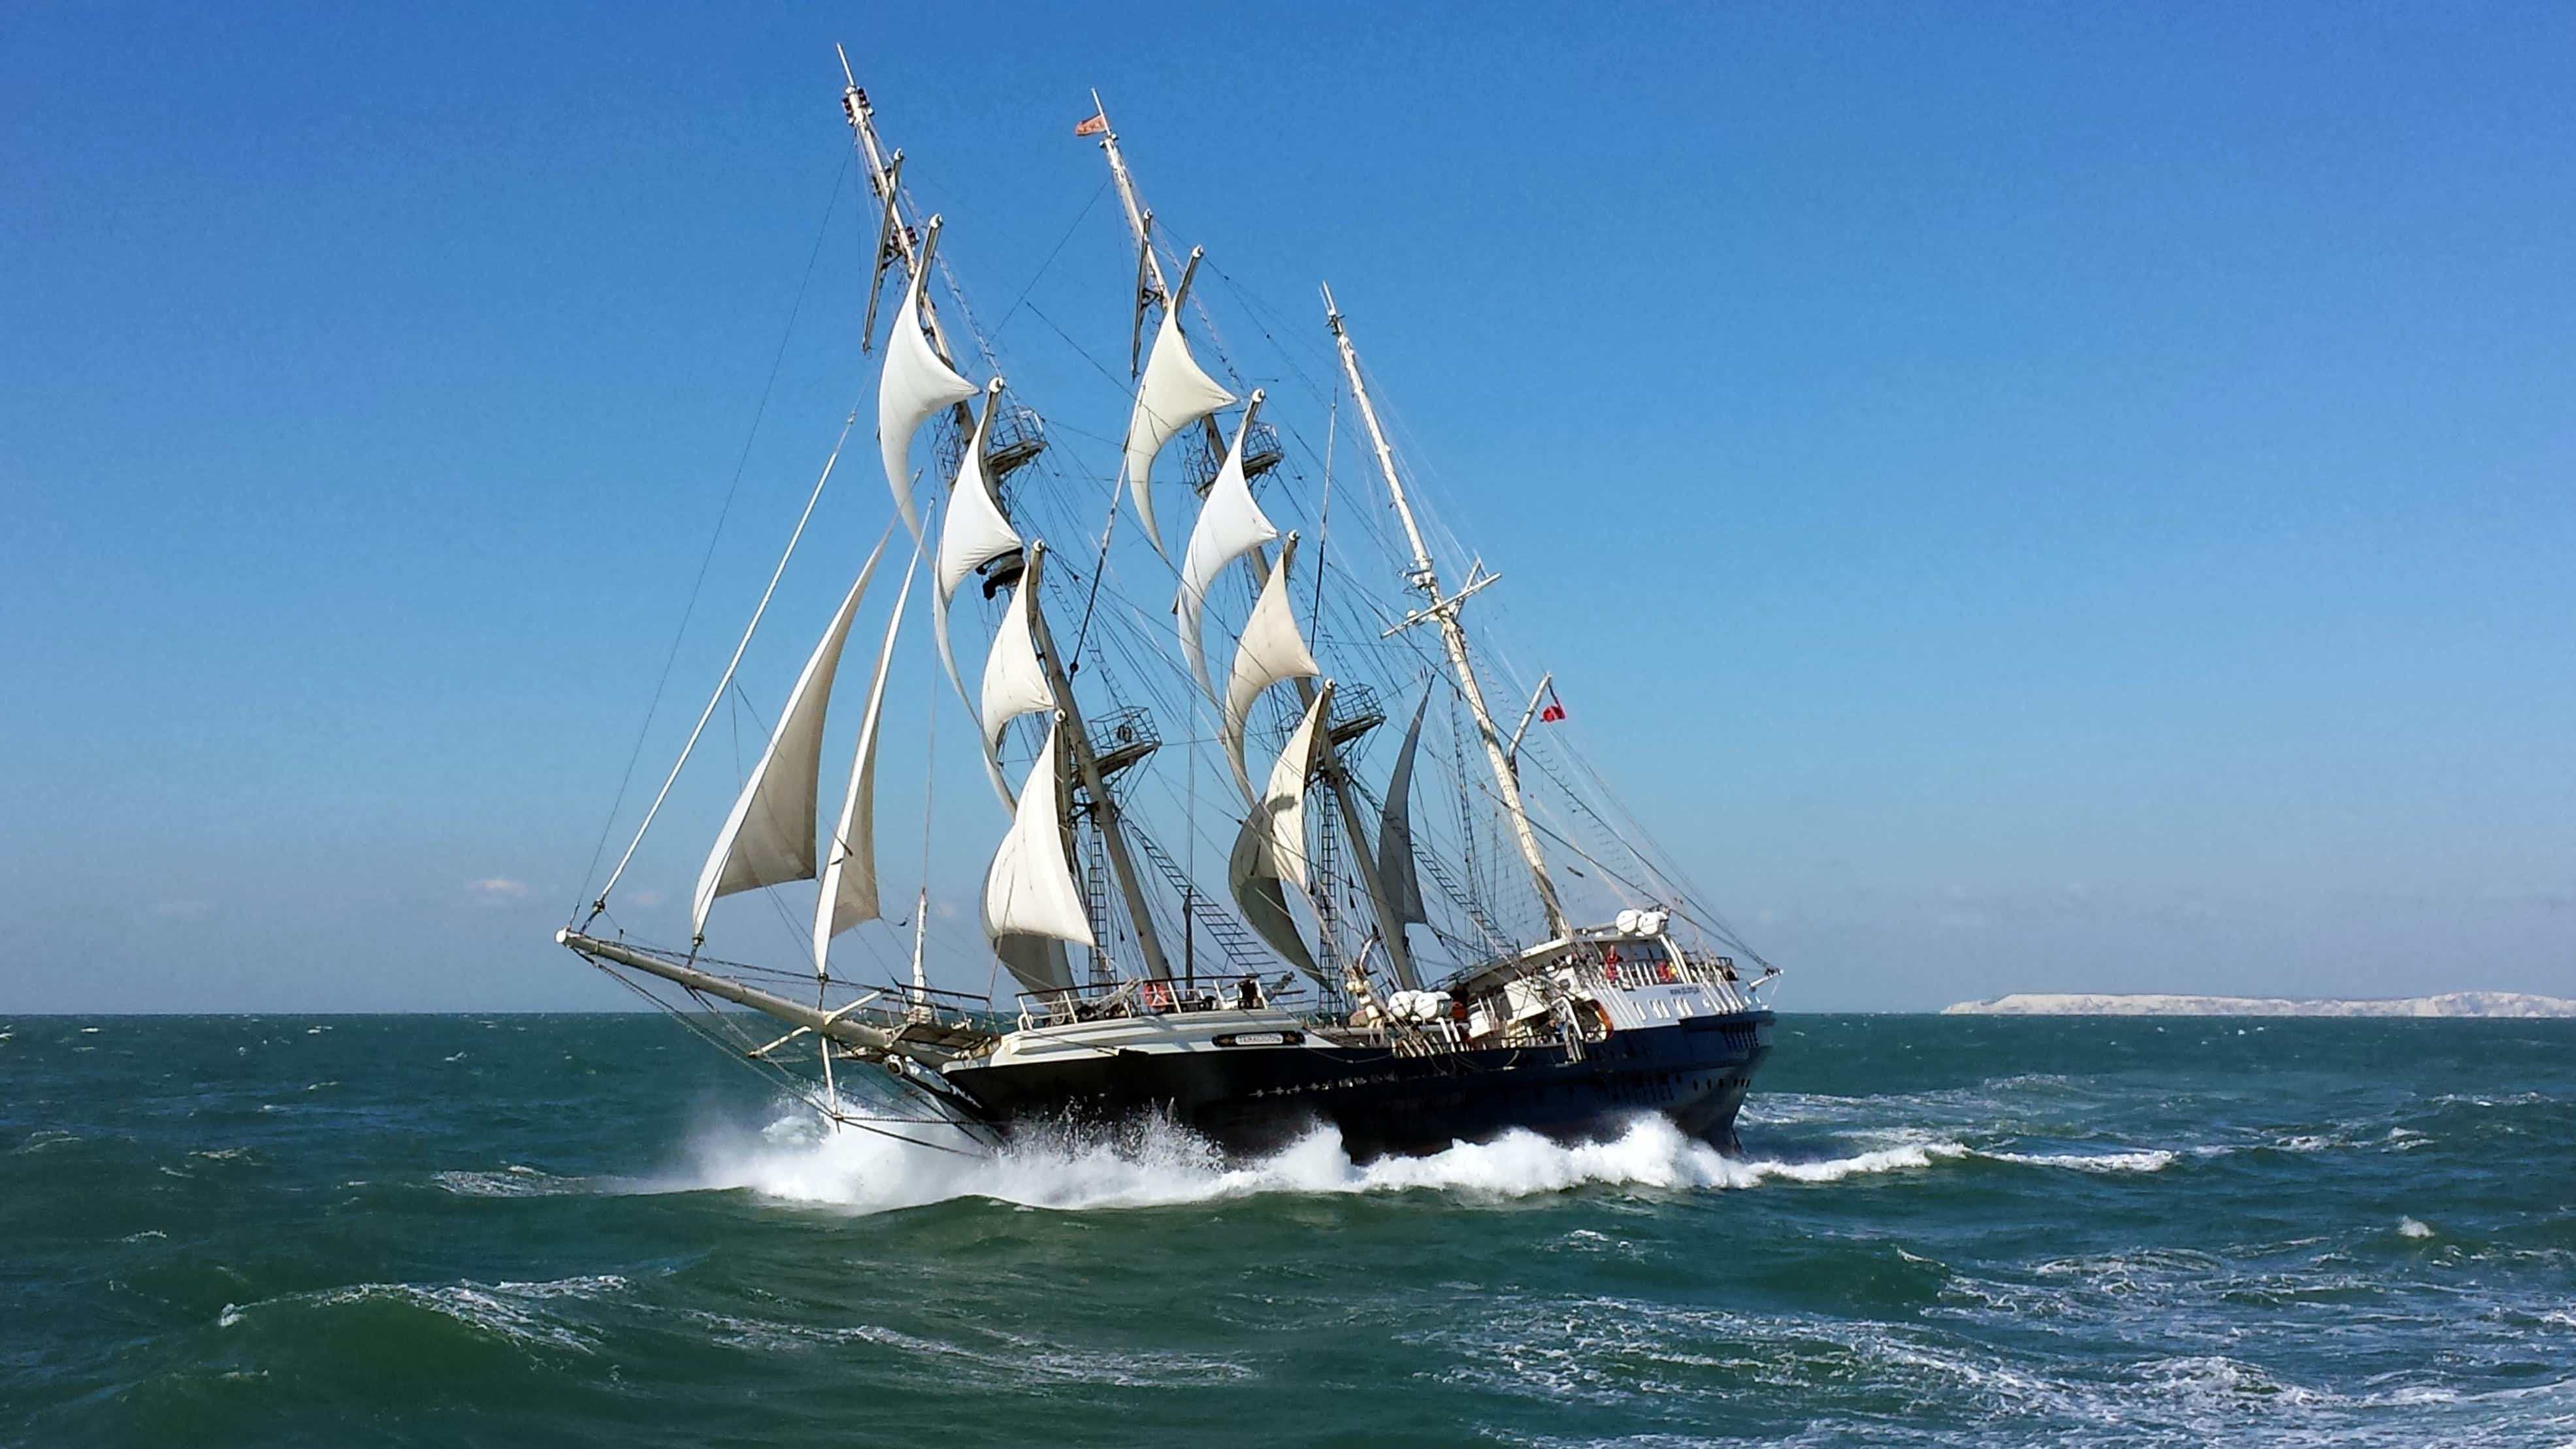 Setting sail for accessible adventure on the SV Tenacious